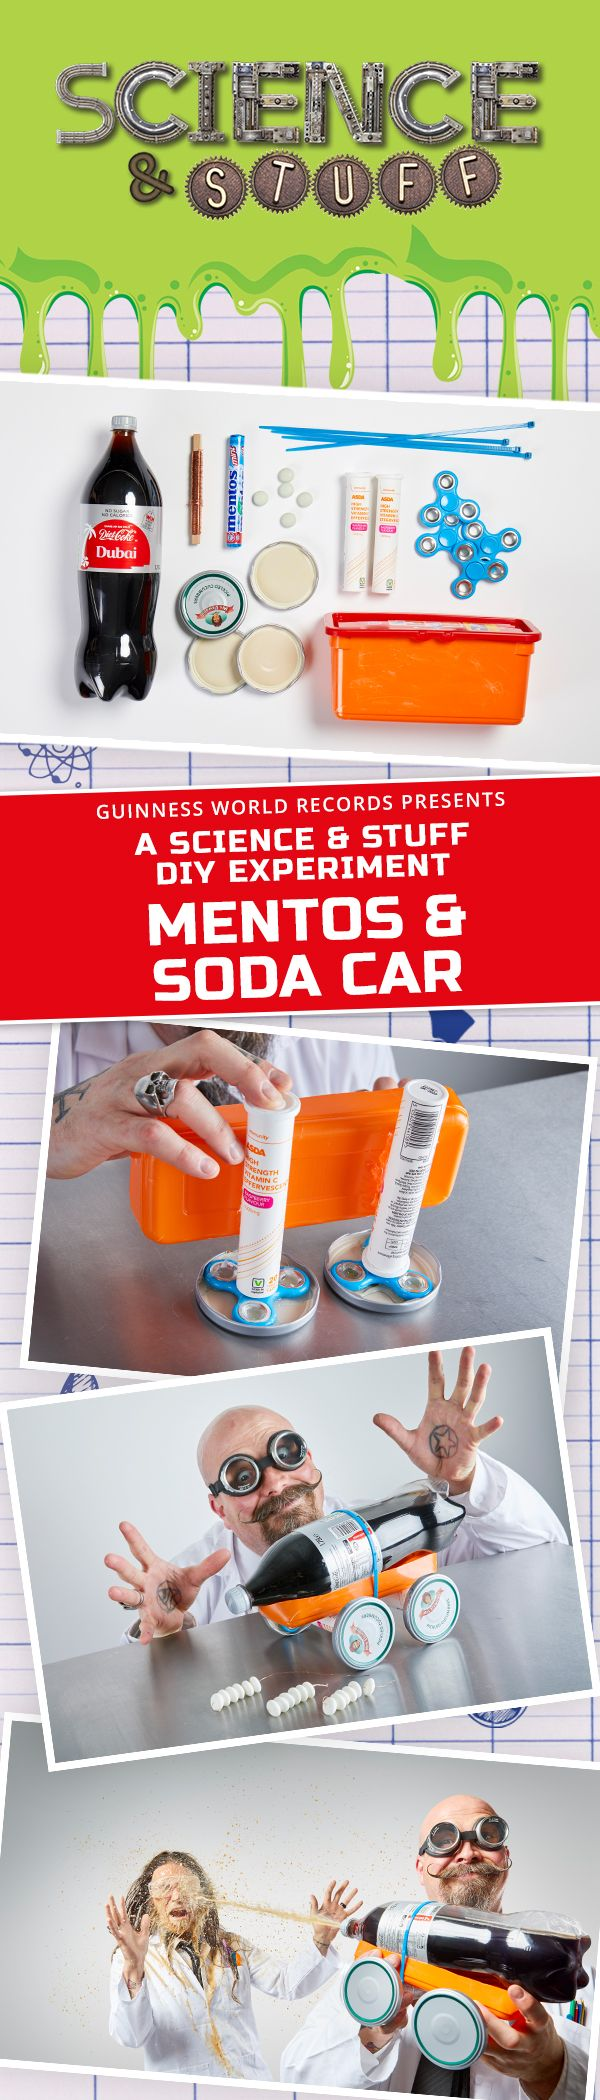 One Of Our Many Diy Science Experiments From The New Guinness World Records Book Science Stuff Whether Y Fun Science Diy Science Diy Science Experiments